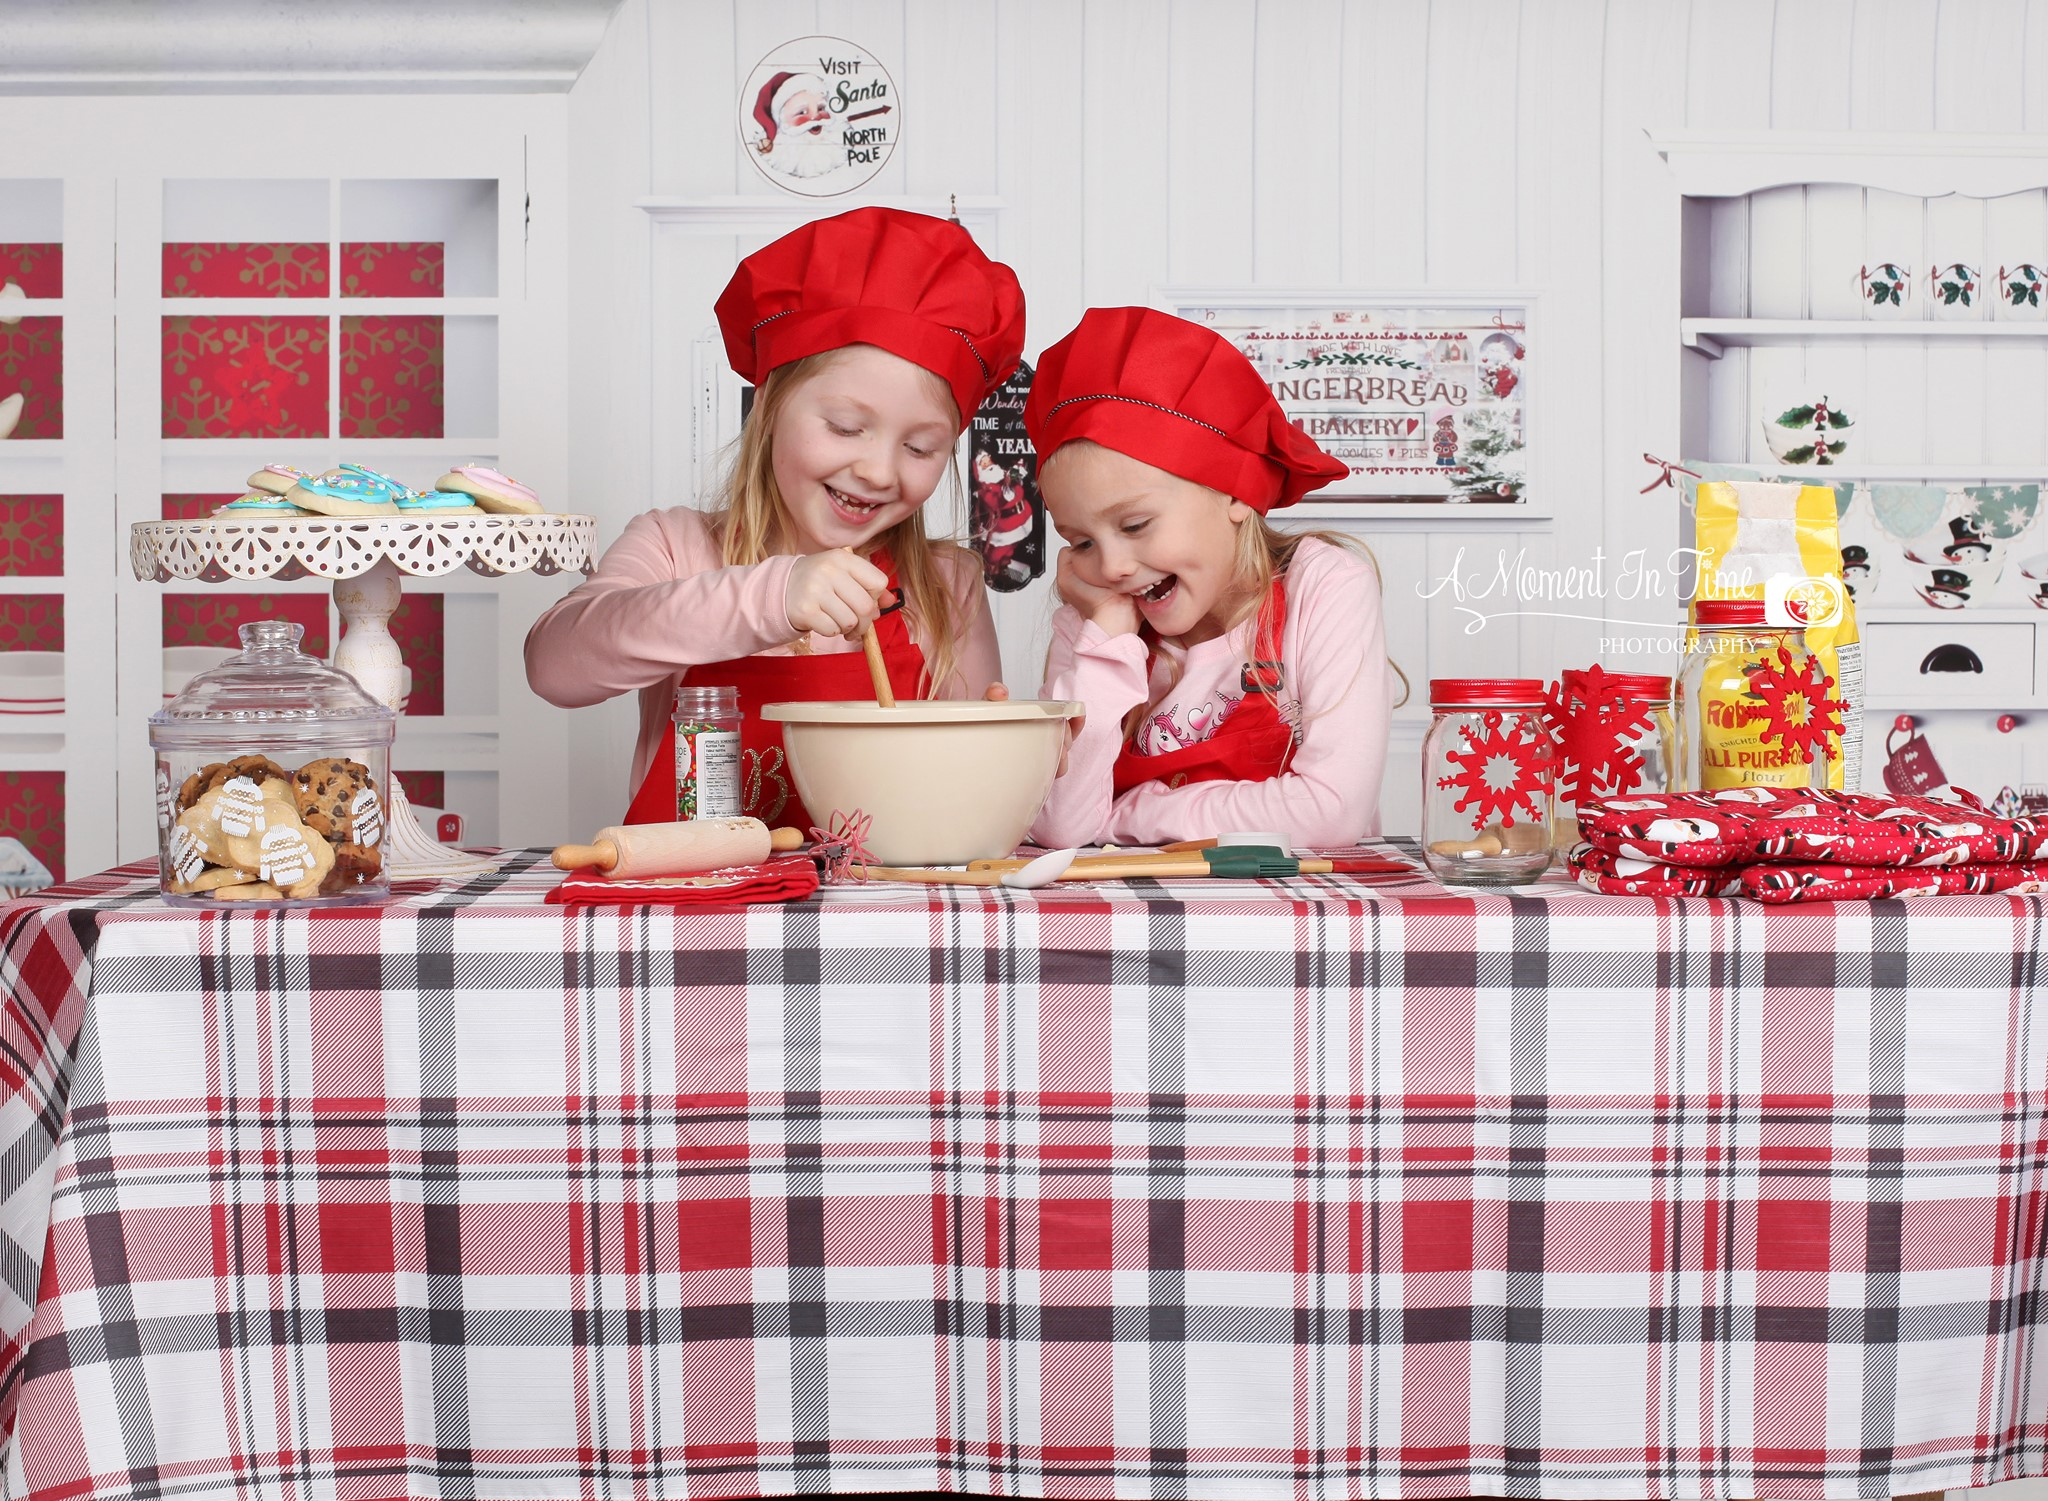 Two Young Girls Baking for Photoshoot